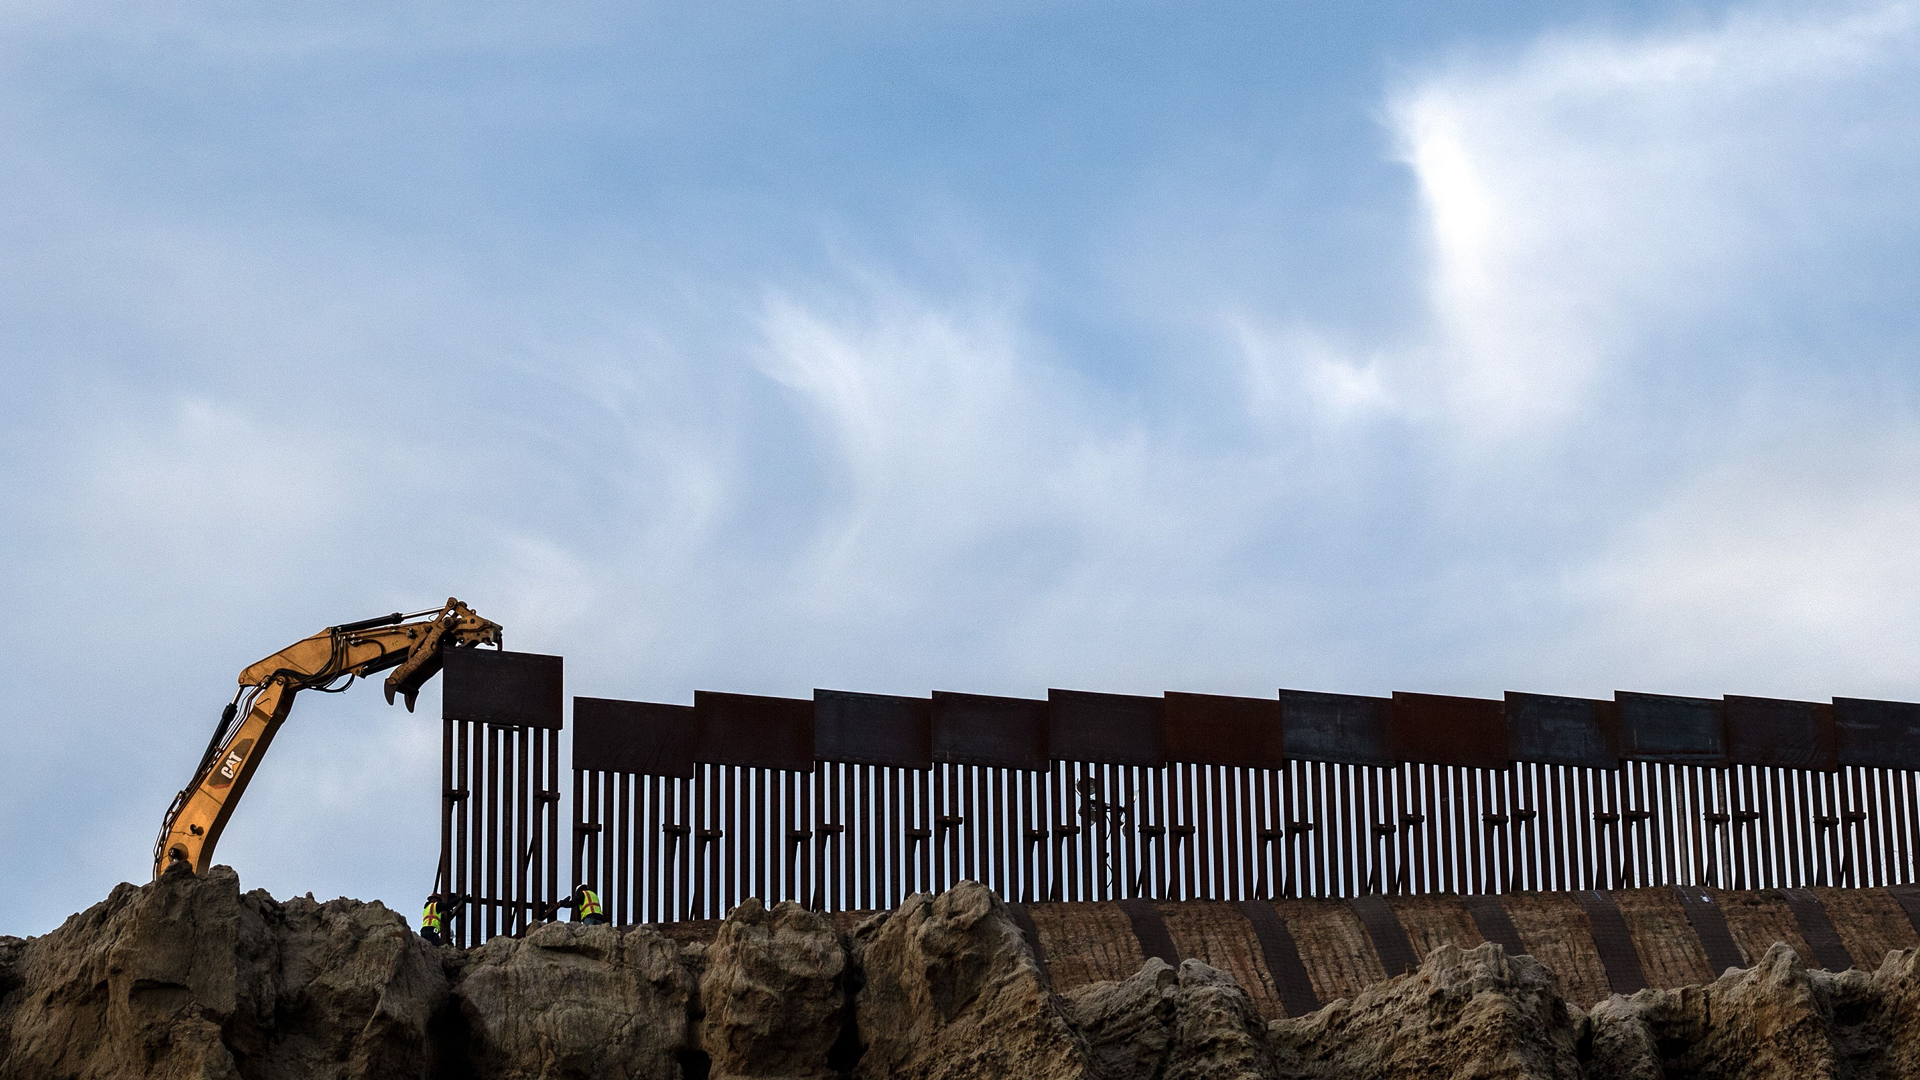 A crew works replacing the old border fence along a section of the U.S.-Mexico border, as seen from Tijuana, in Baja California state, Mexico, on Jan. 8, 2019. (Credit: GUILLERMO ARIAS/AFP/Getty Images)